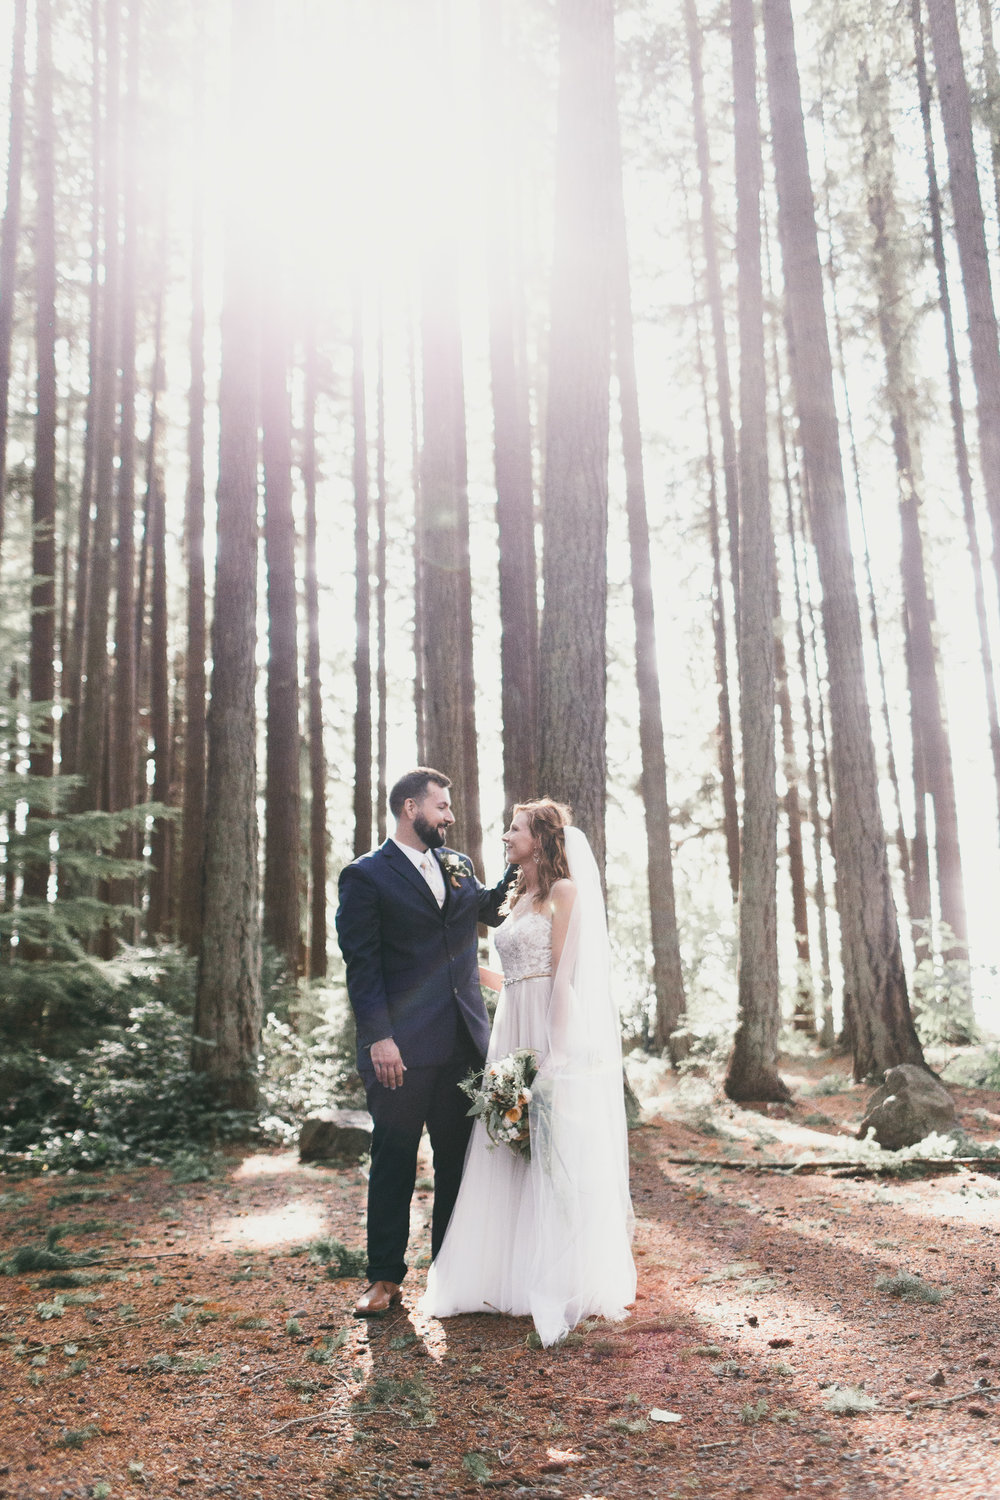 sun shining through trees at kitsap memorial state park with bride and groom